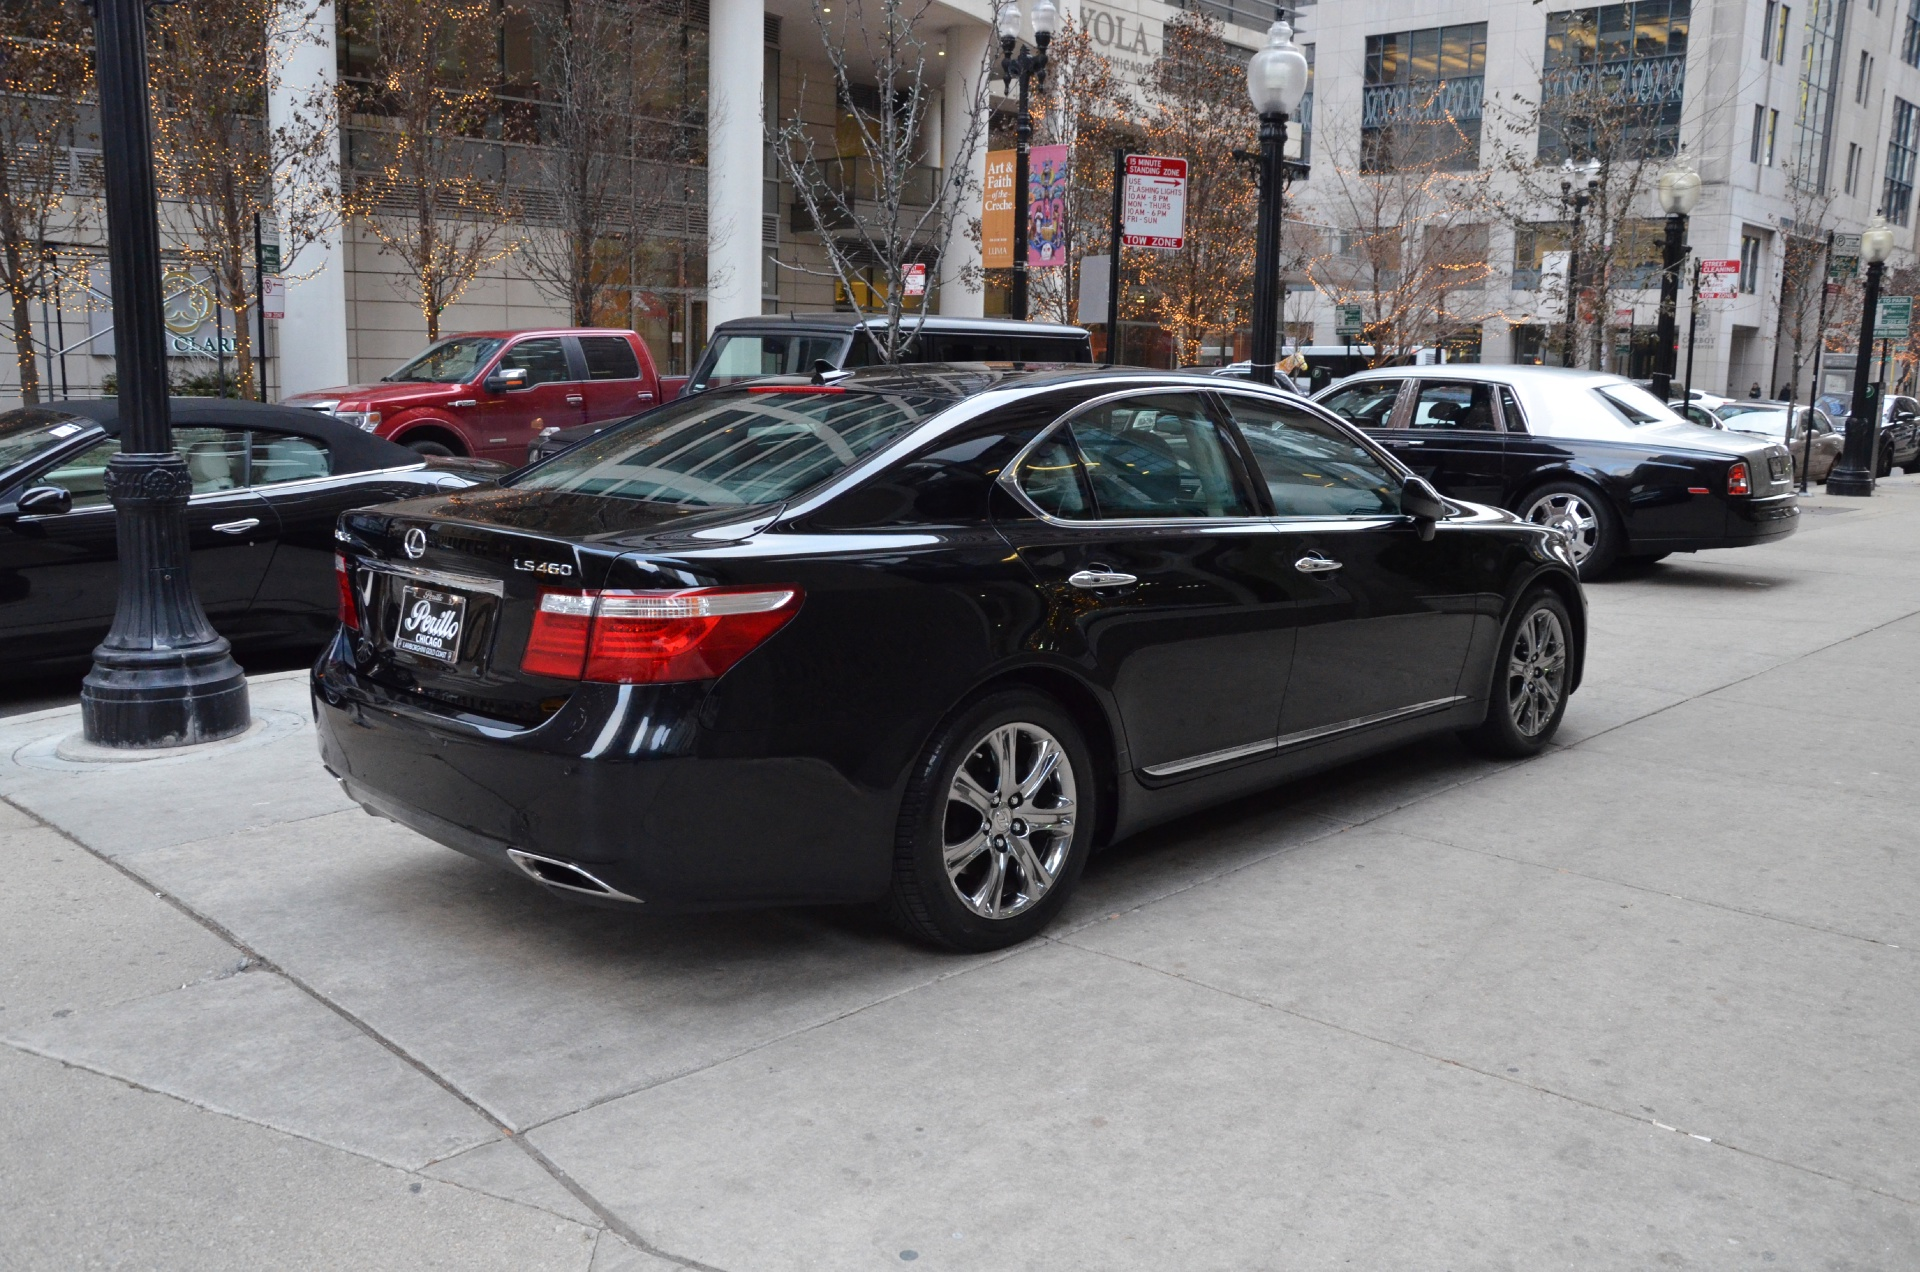 2008 lexus ls 460 stock m263a for sale near chicago il. Black Bedroom Furniture Sets. Home Design Ideas